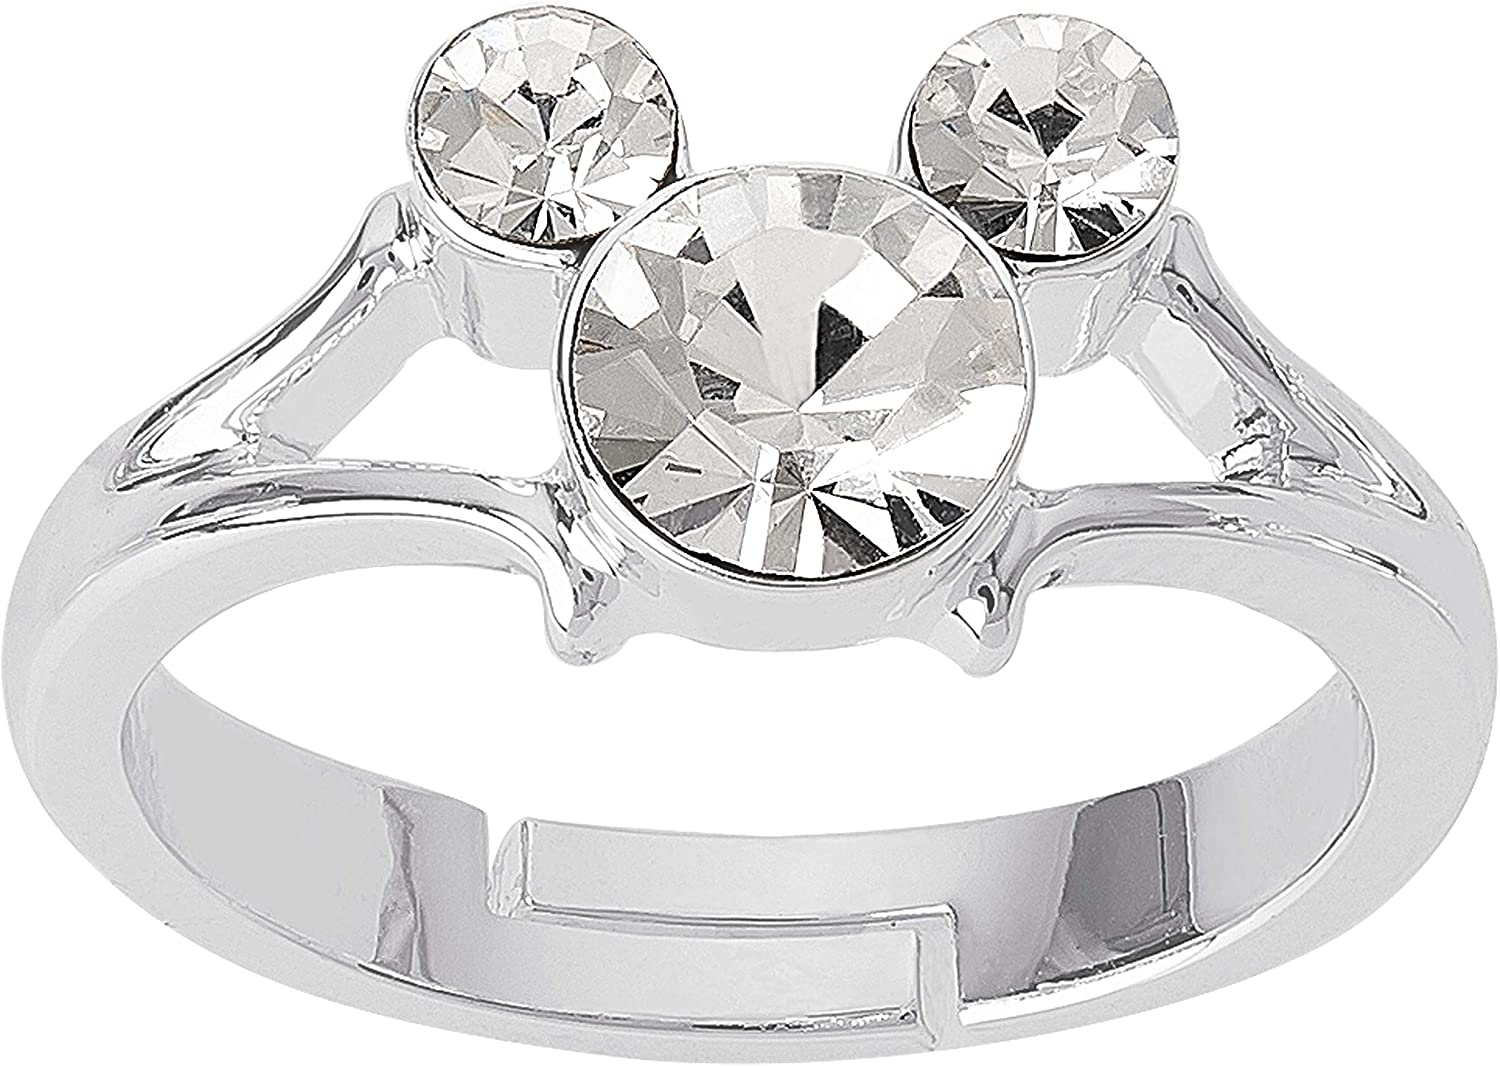 Disney Mickey Mouse Jewelry, Silver Plated Crystal Ring, Size 4,